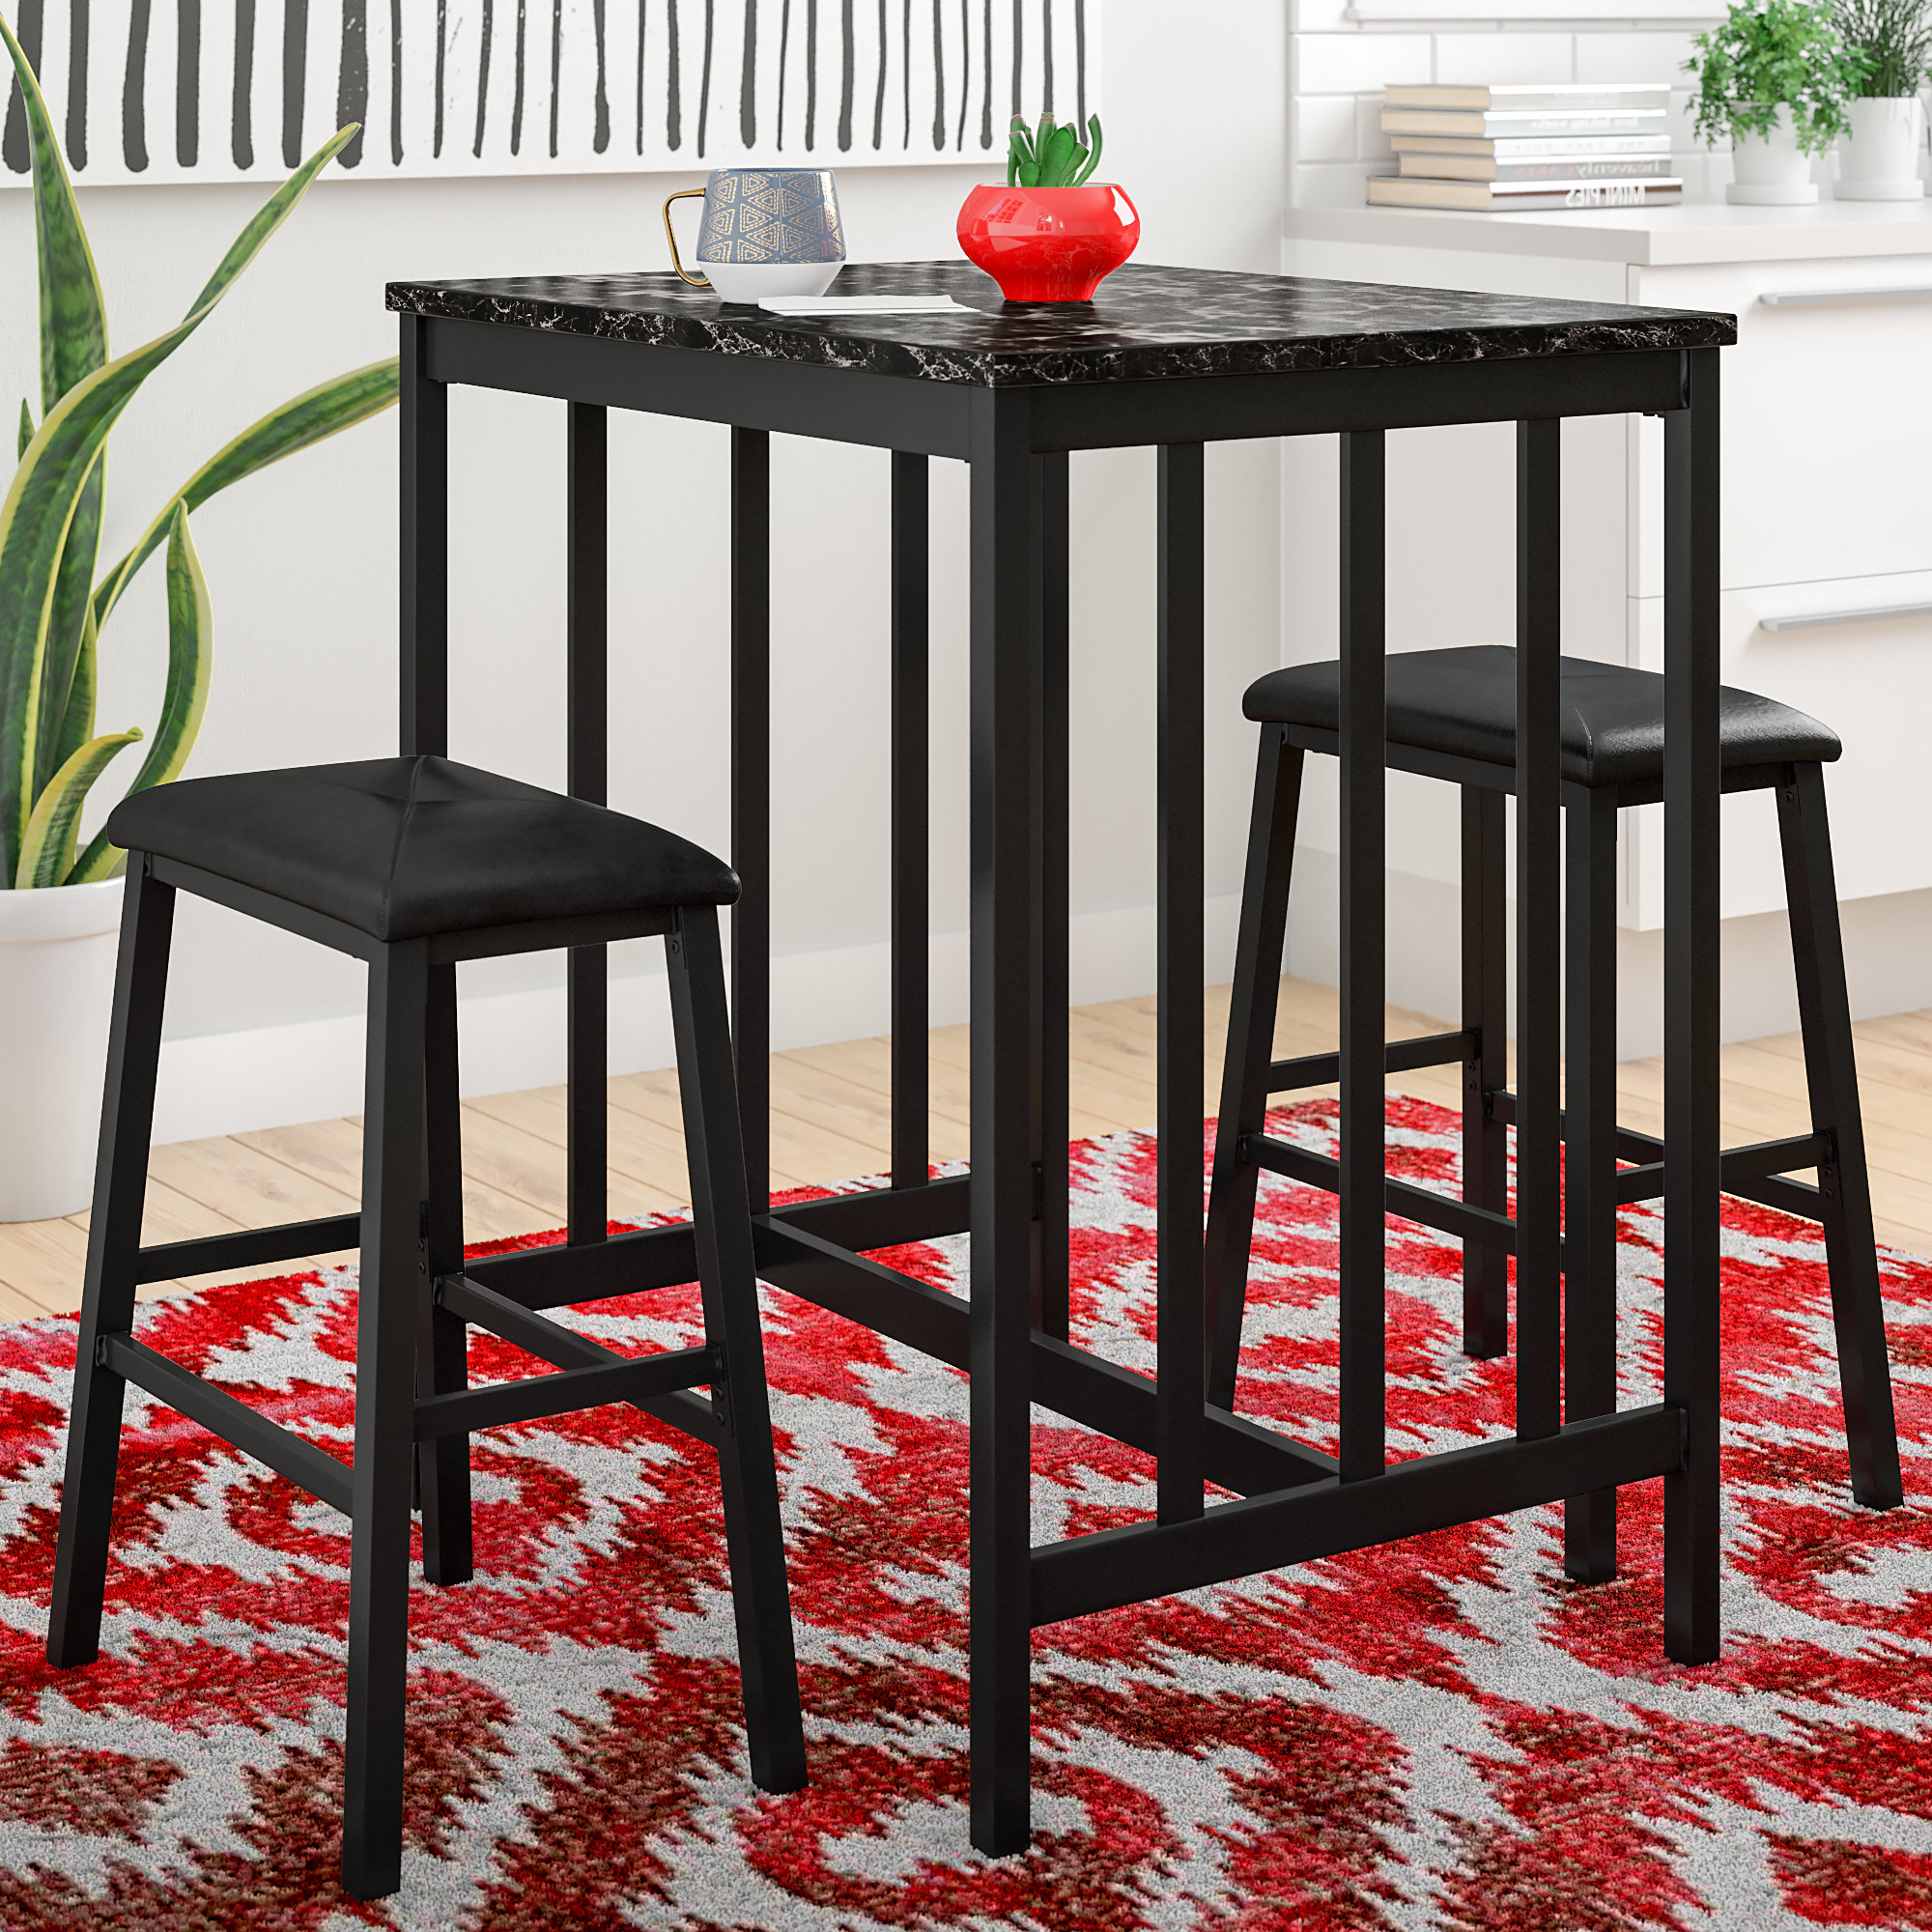 Miskell 3 Piece Dining Sets Intended For Popular Andover Mills Della 3 Piece Pub Table Set & Reviews (View 10 of 25)